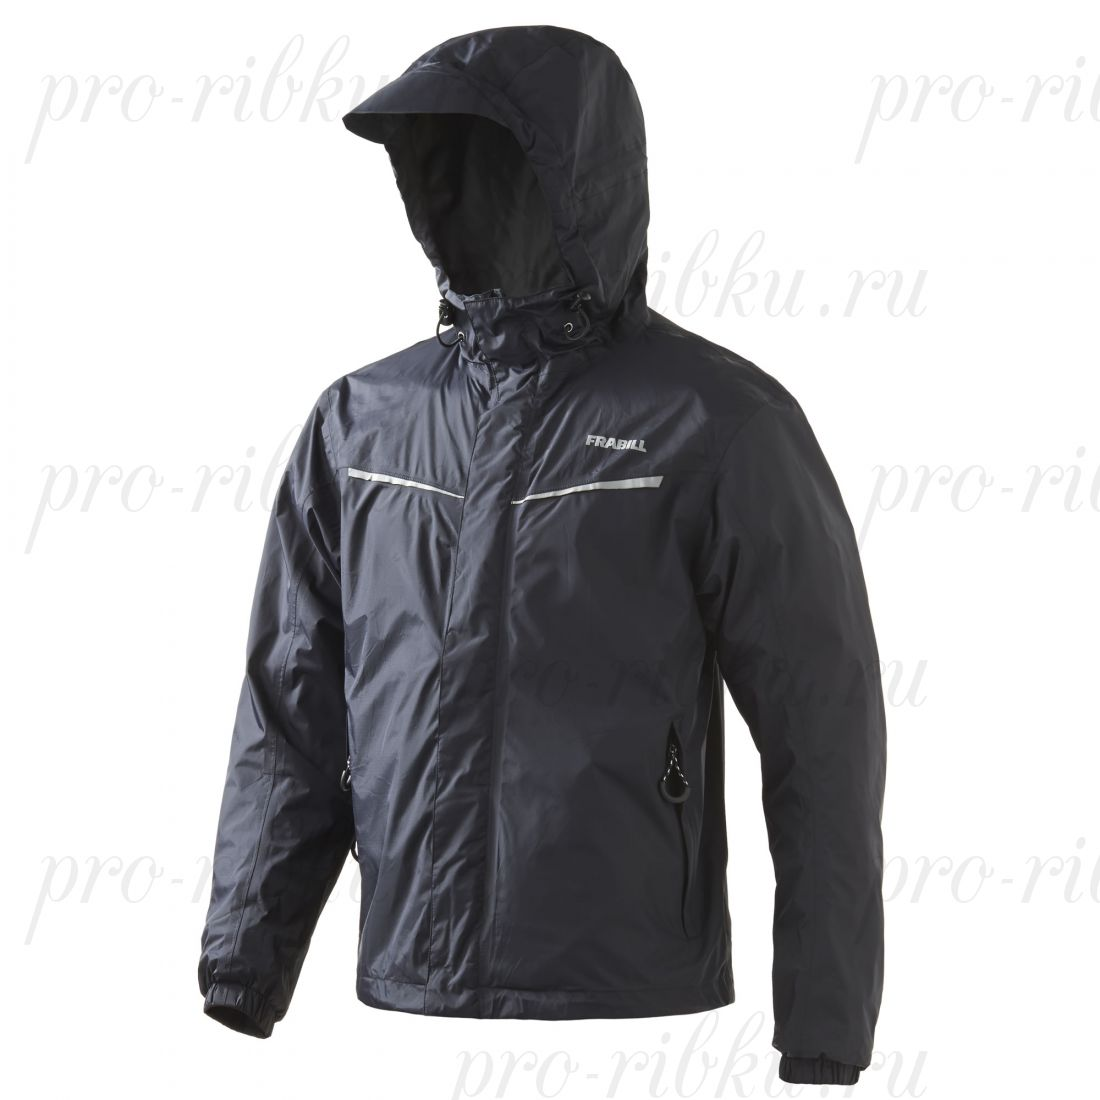 Куртка штормовая FRABILL Stow Jacket LT Brown, р. M